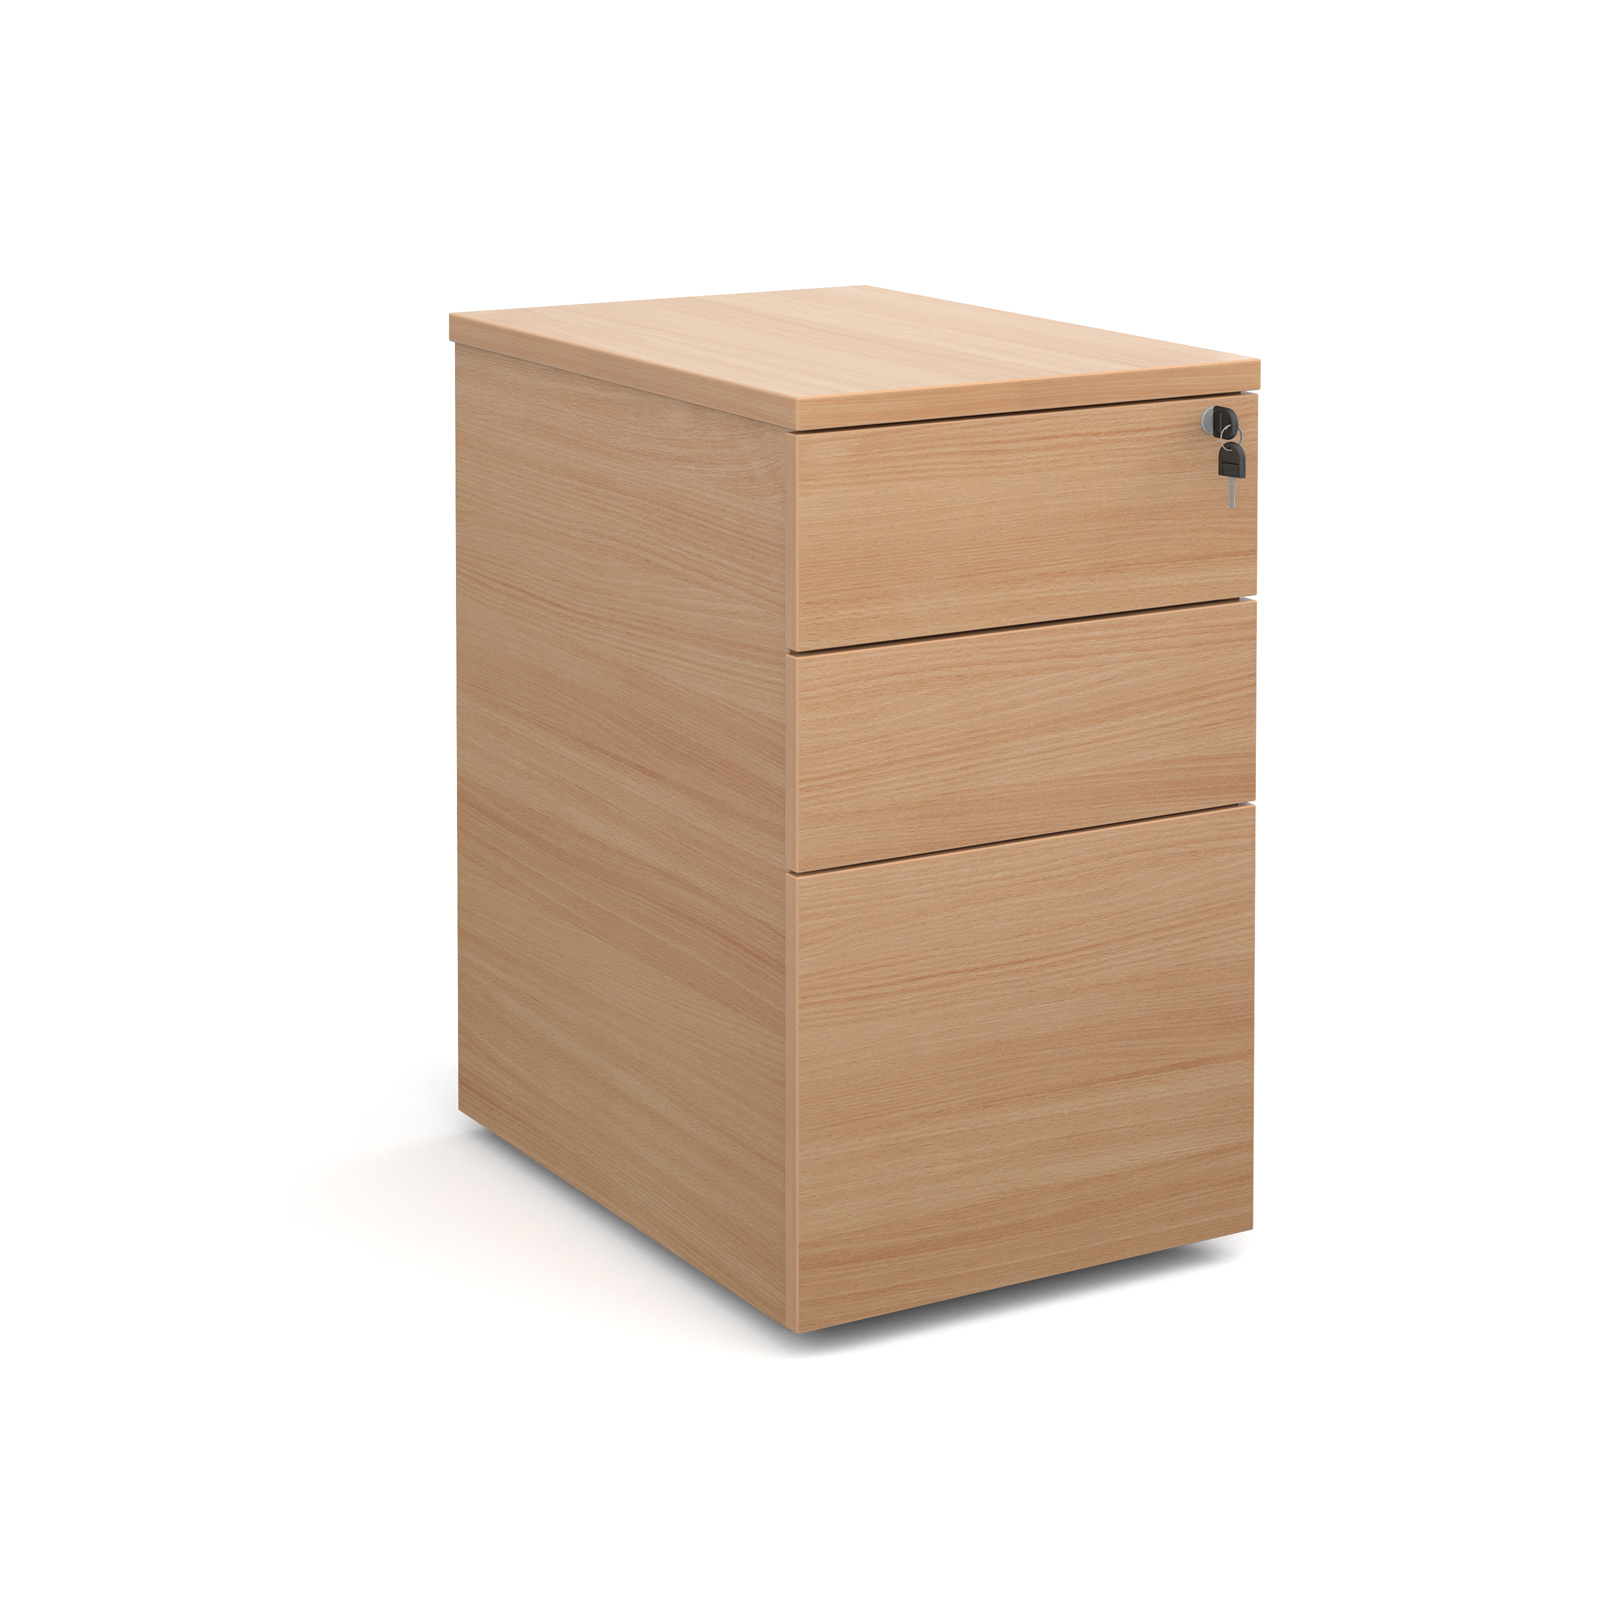 600mm Deep Desk High Pedestal in beech